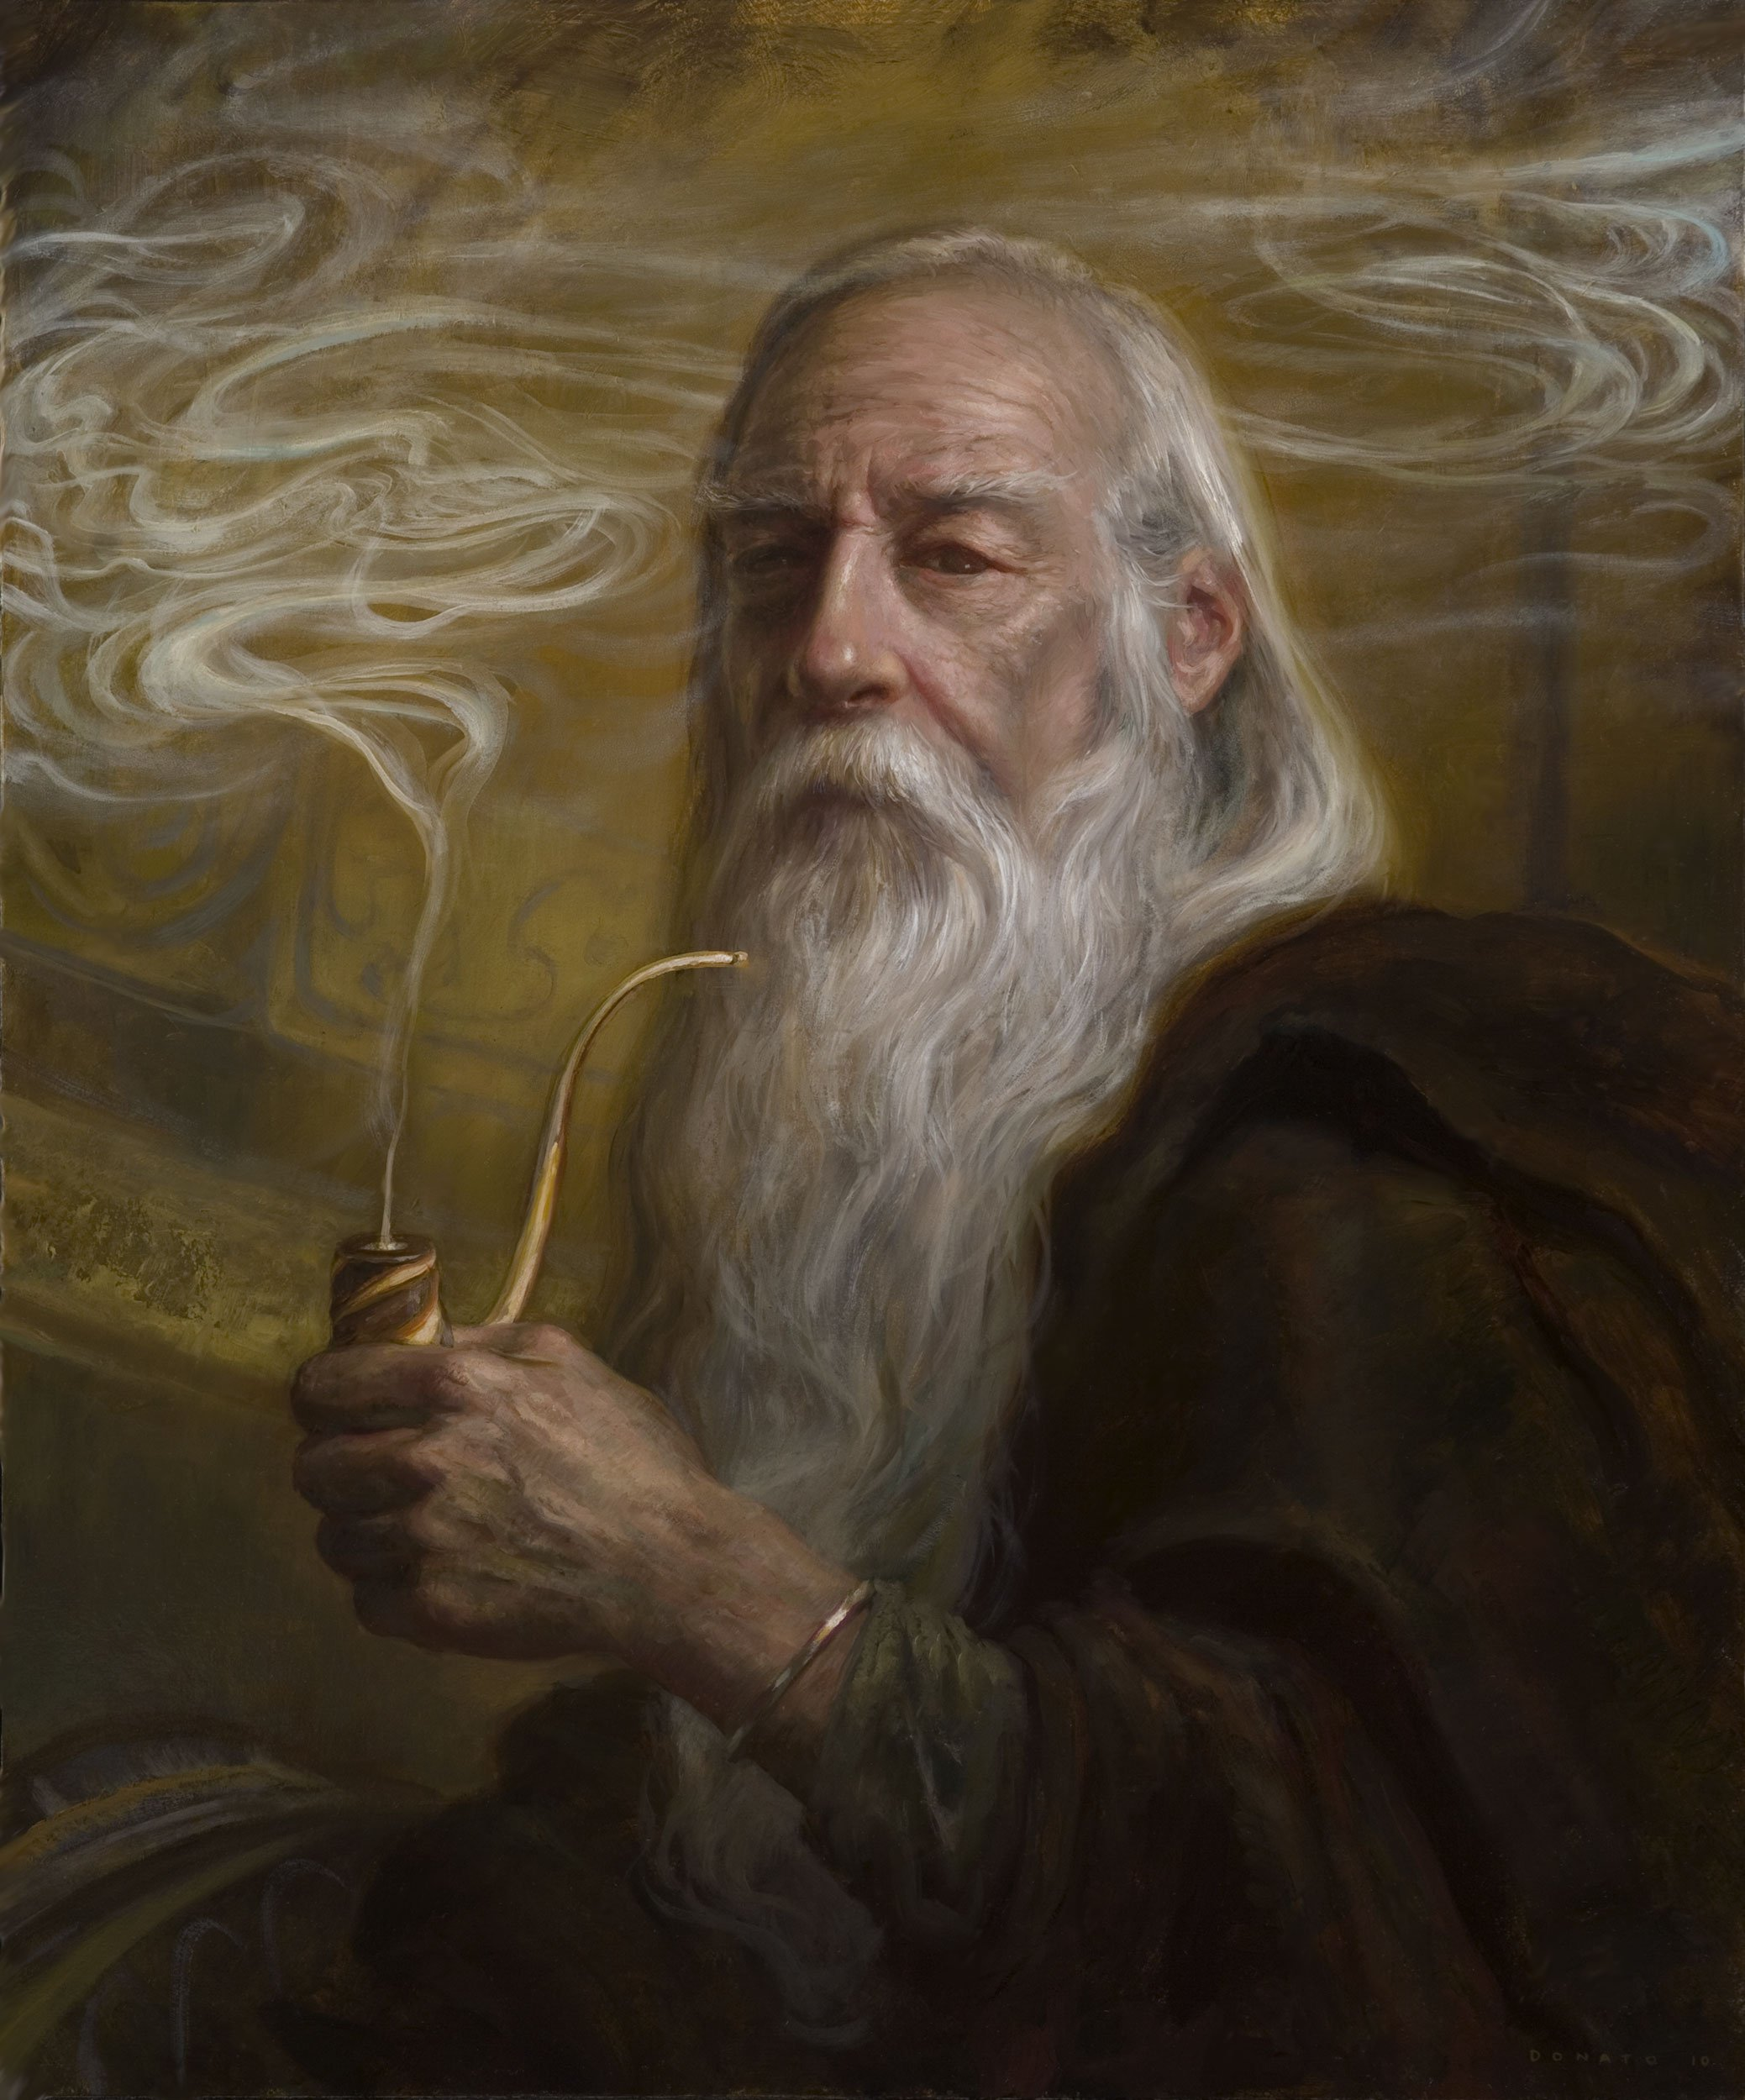 https://0201.nccdn.net/4_2/000/000/01e/20c/Gandalf_Rivendell_Smoking-2077x2500.jpg